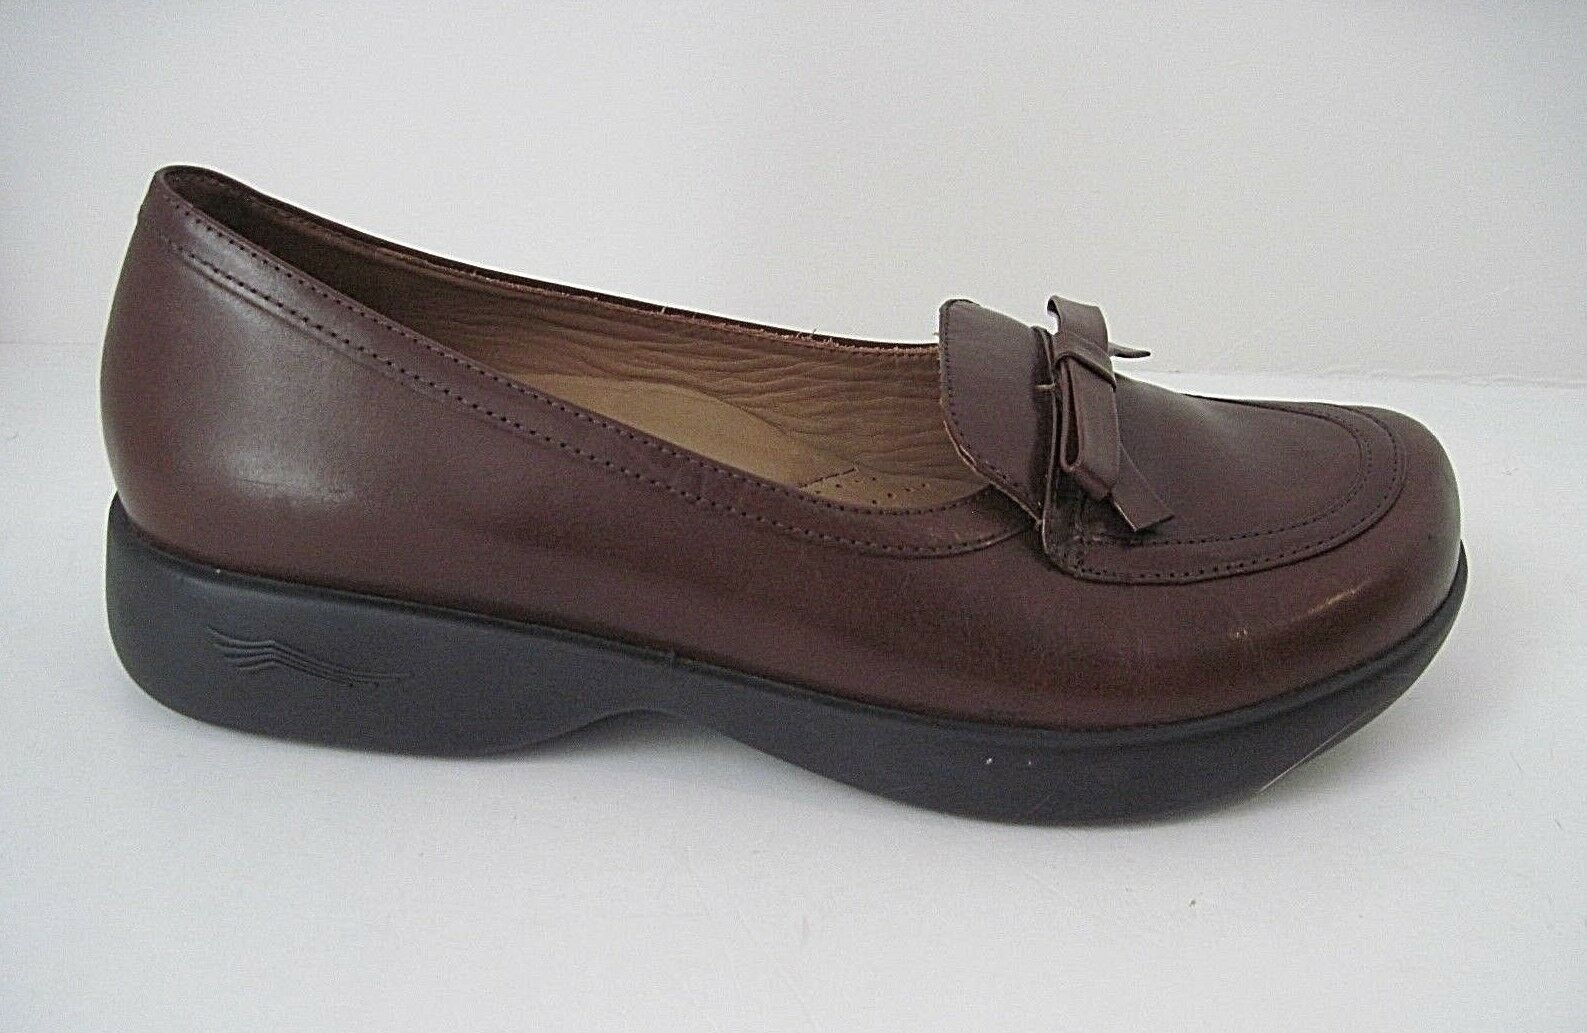 Dansko Women's Shoes Brown Leather Slip On Loafers Front bow Size 40